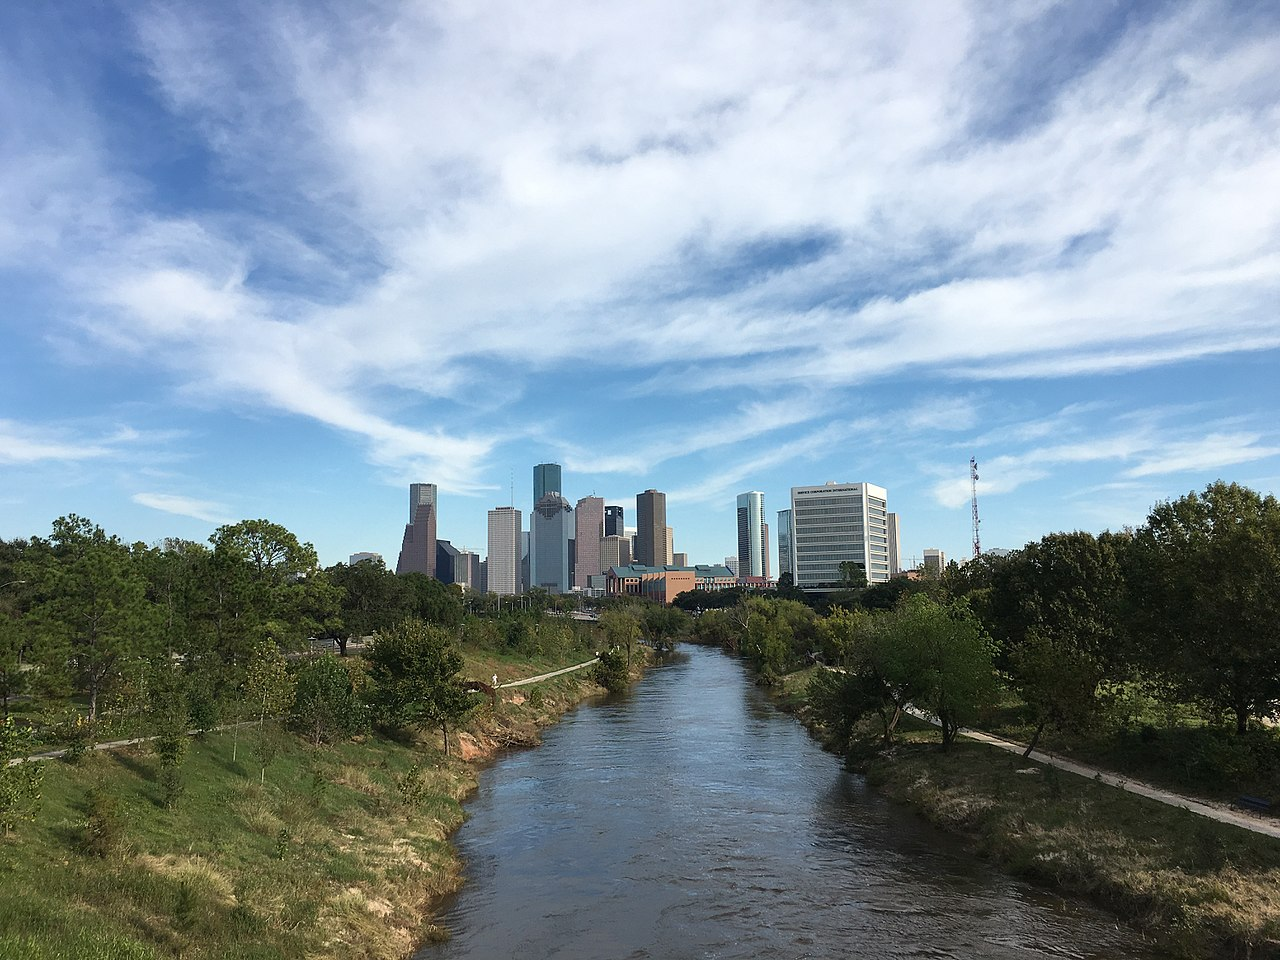 Nice Outdoor Activities In Houston-Check out the Buffalo Bayou Park